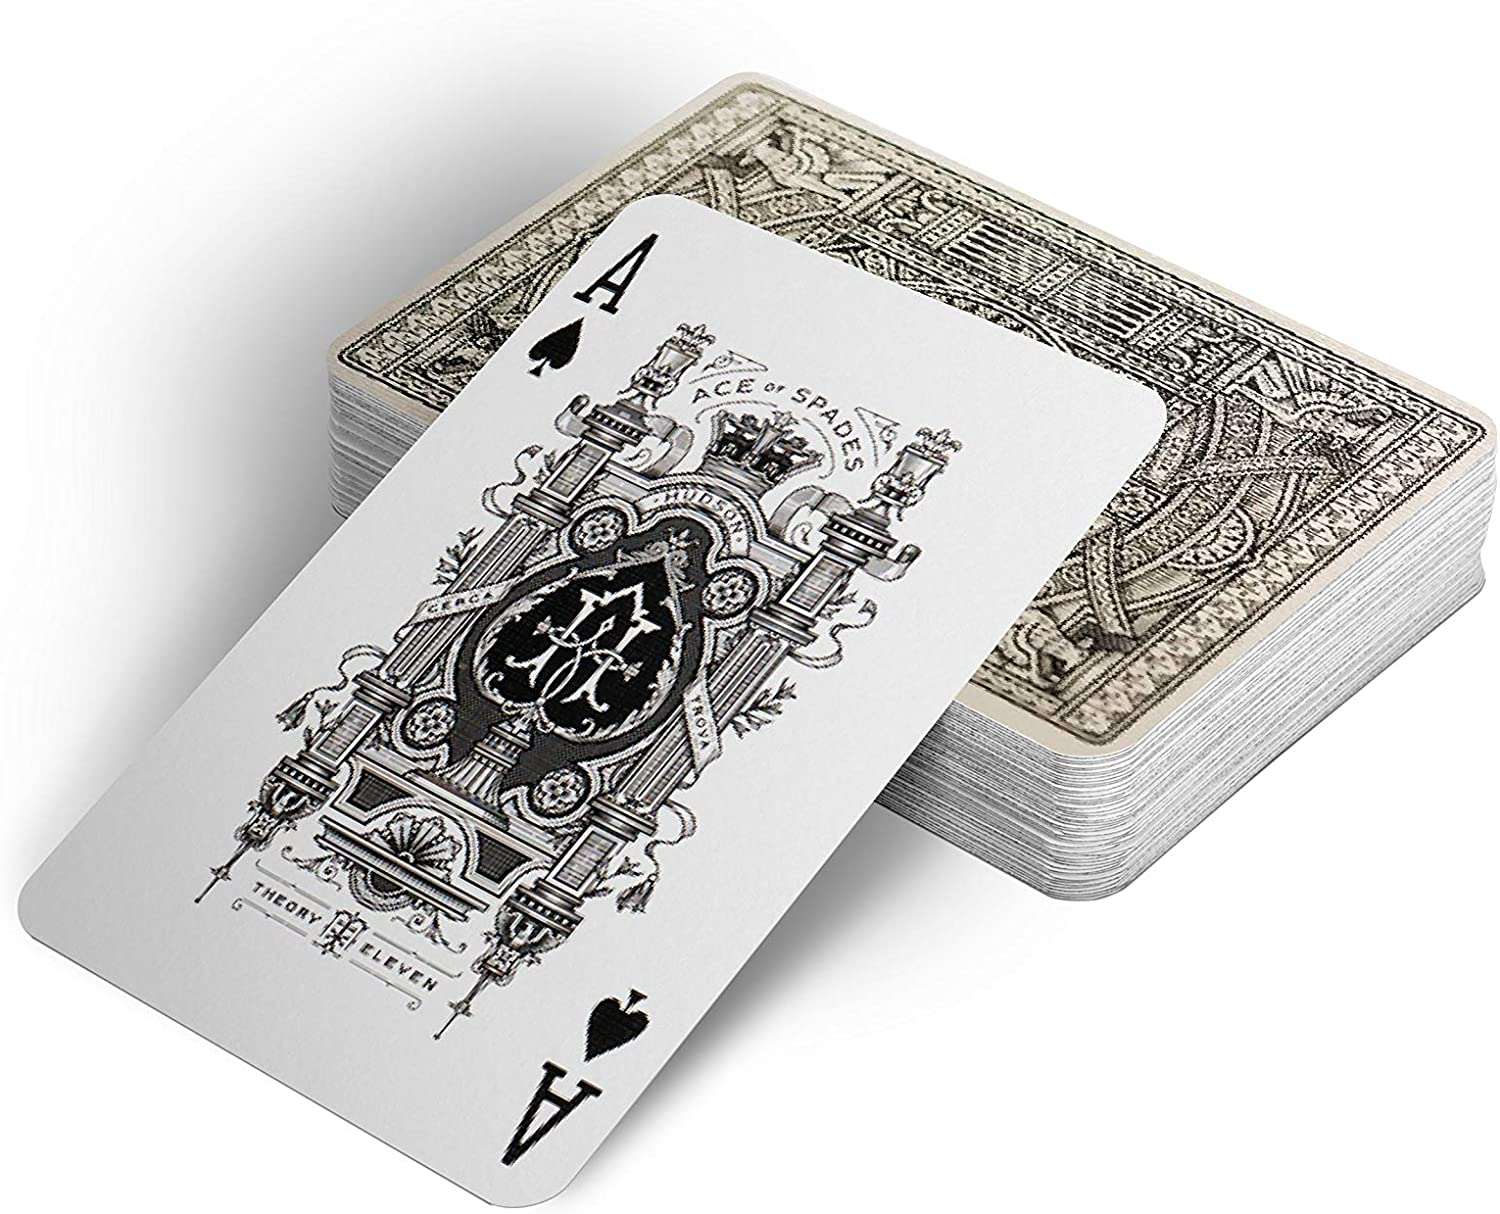 SYNCSPIKE Black Hudson Playing Cards Deck /& Clear Playing Cards Case Made in America. A Premium Playing Cards Inspired by a Legendary Factory Dating Back to 1856